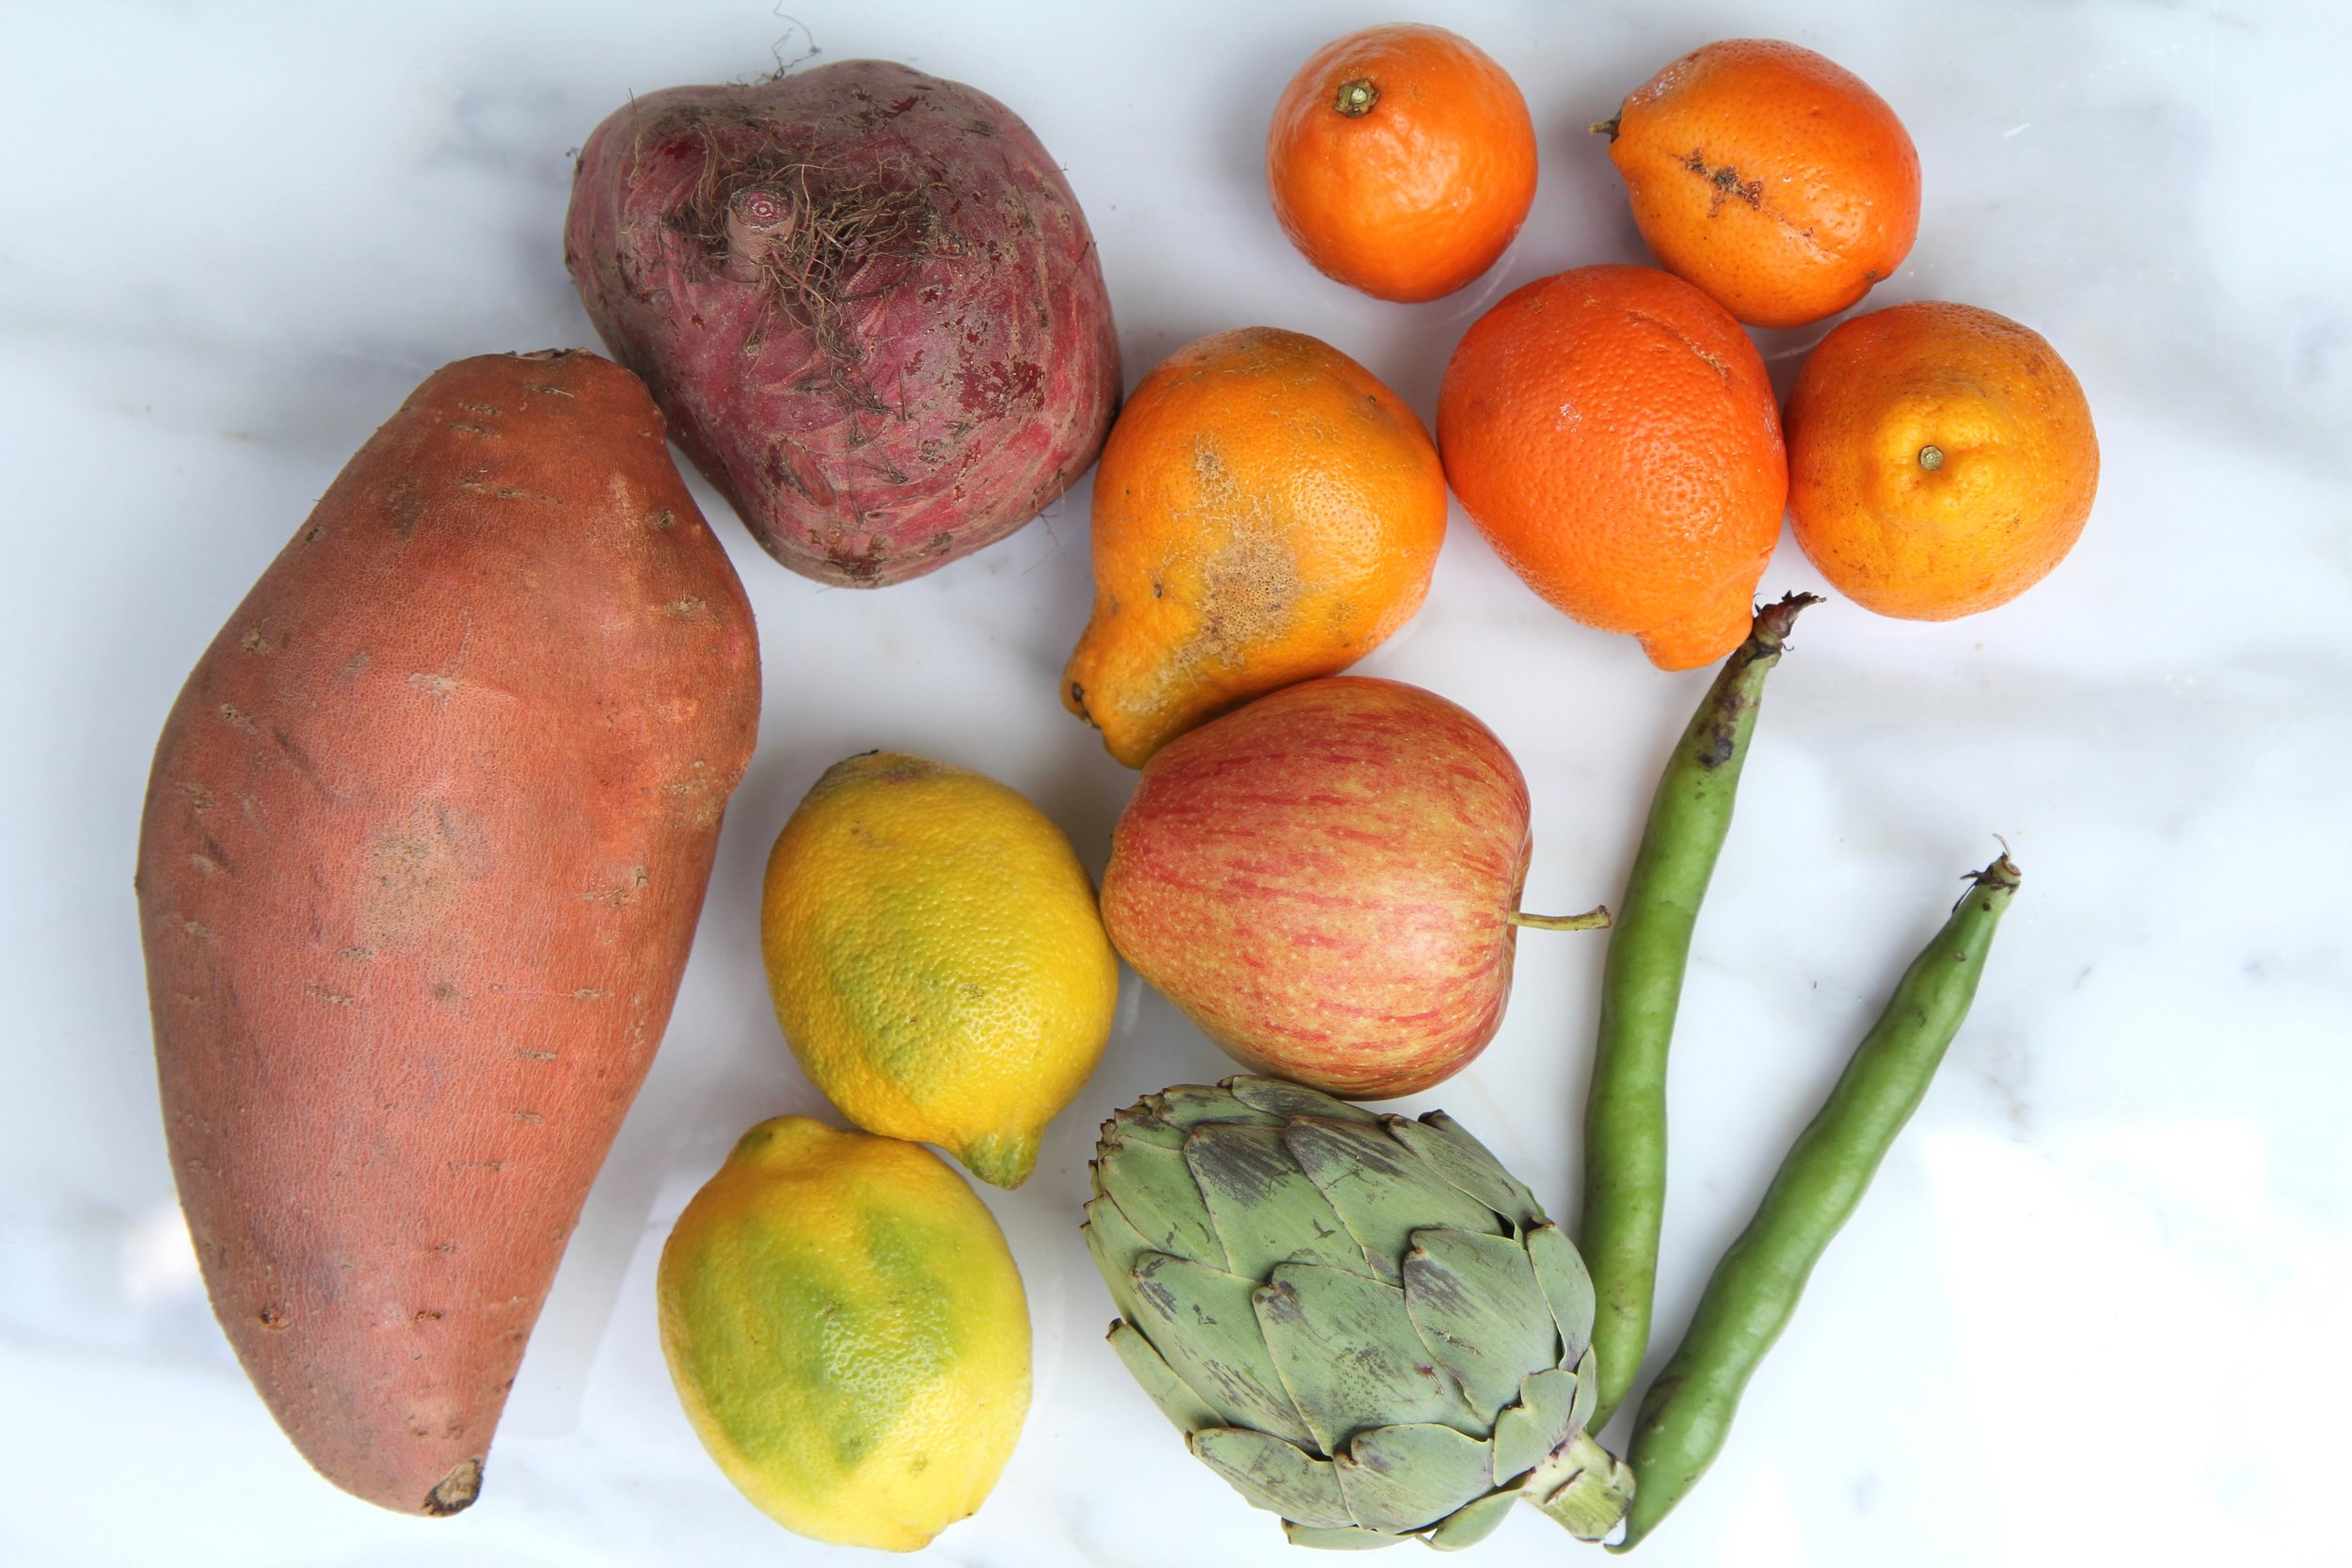 A sampling of the most imperfect looking produce in our box.  (Photo Credit: Hermosa Journal)